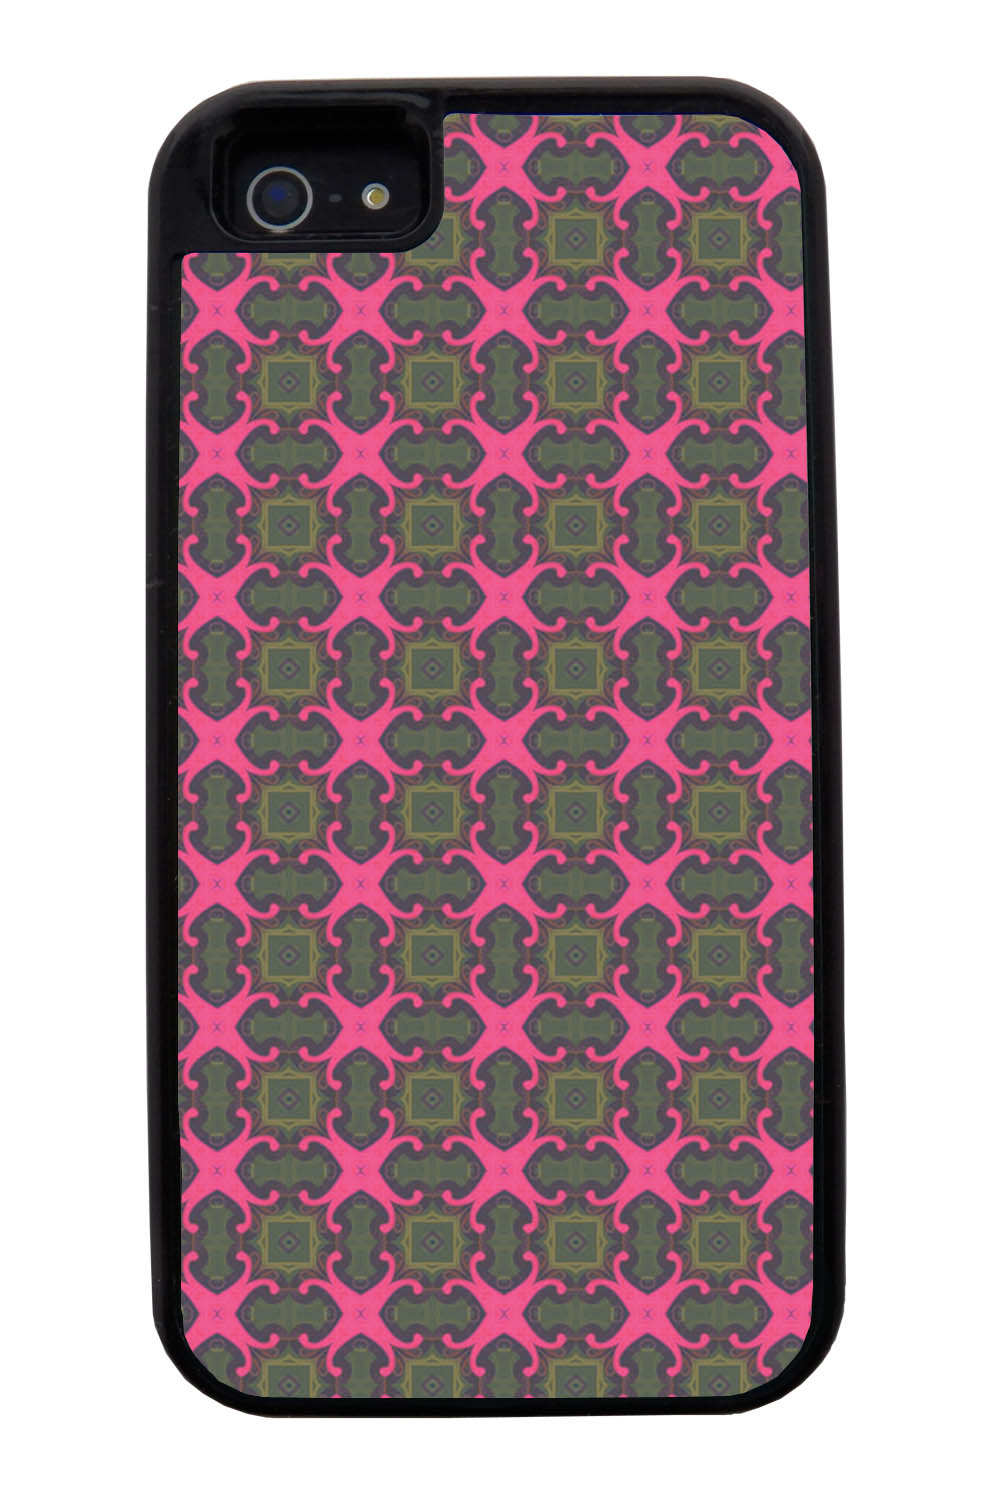 Apple iPhone 5 / 5S Abstract Case - Olive Green and Pink - Flower Petal Like - Black Tough Hybrid Case